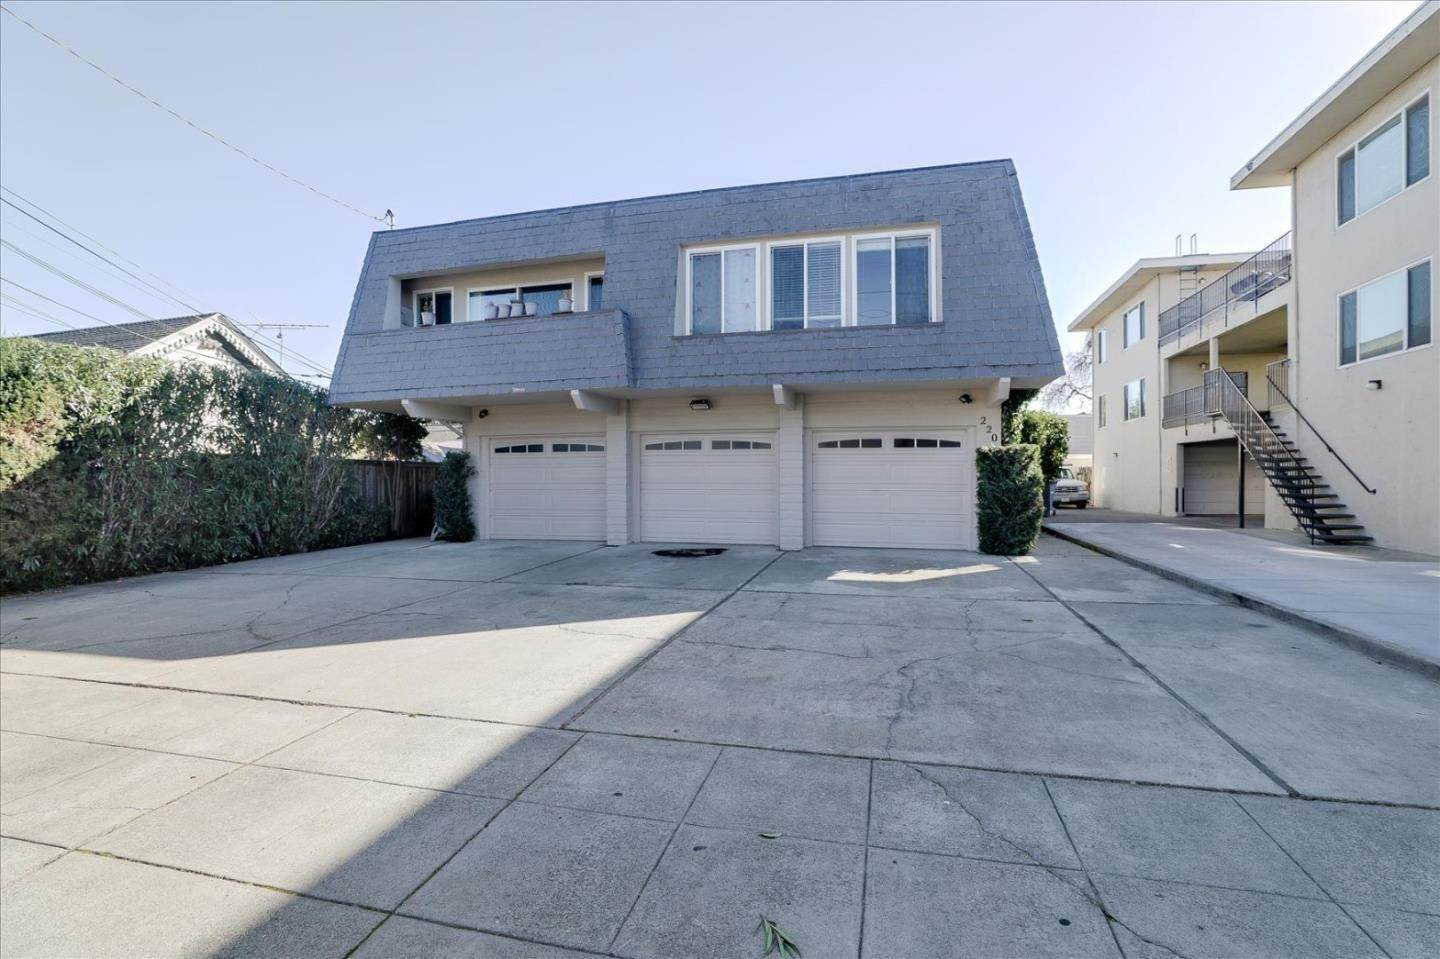 Multi-Family Homes for Sale at 220 Standish Street Redwood City, California 94063 United States